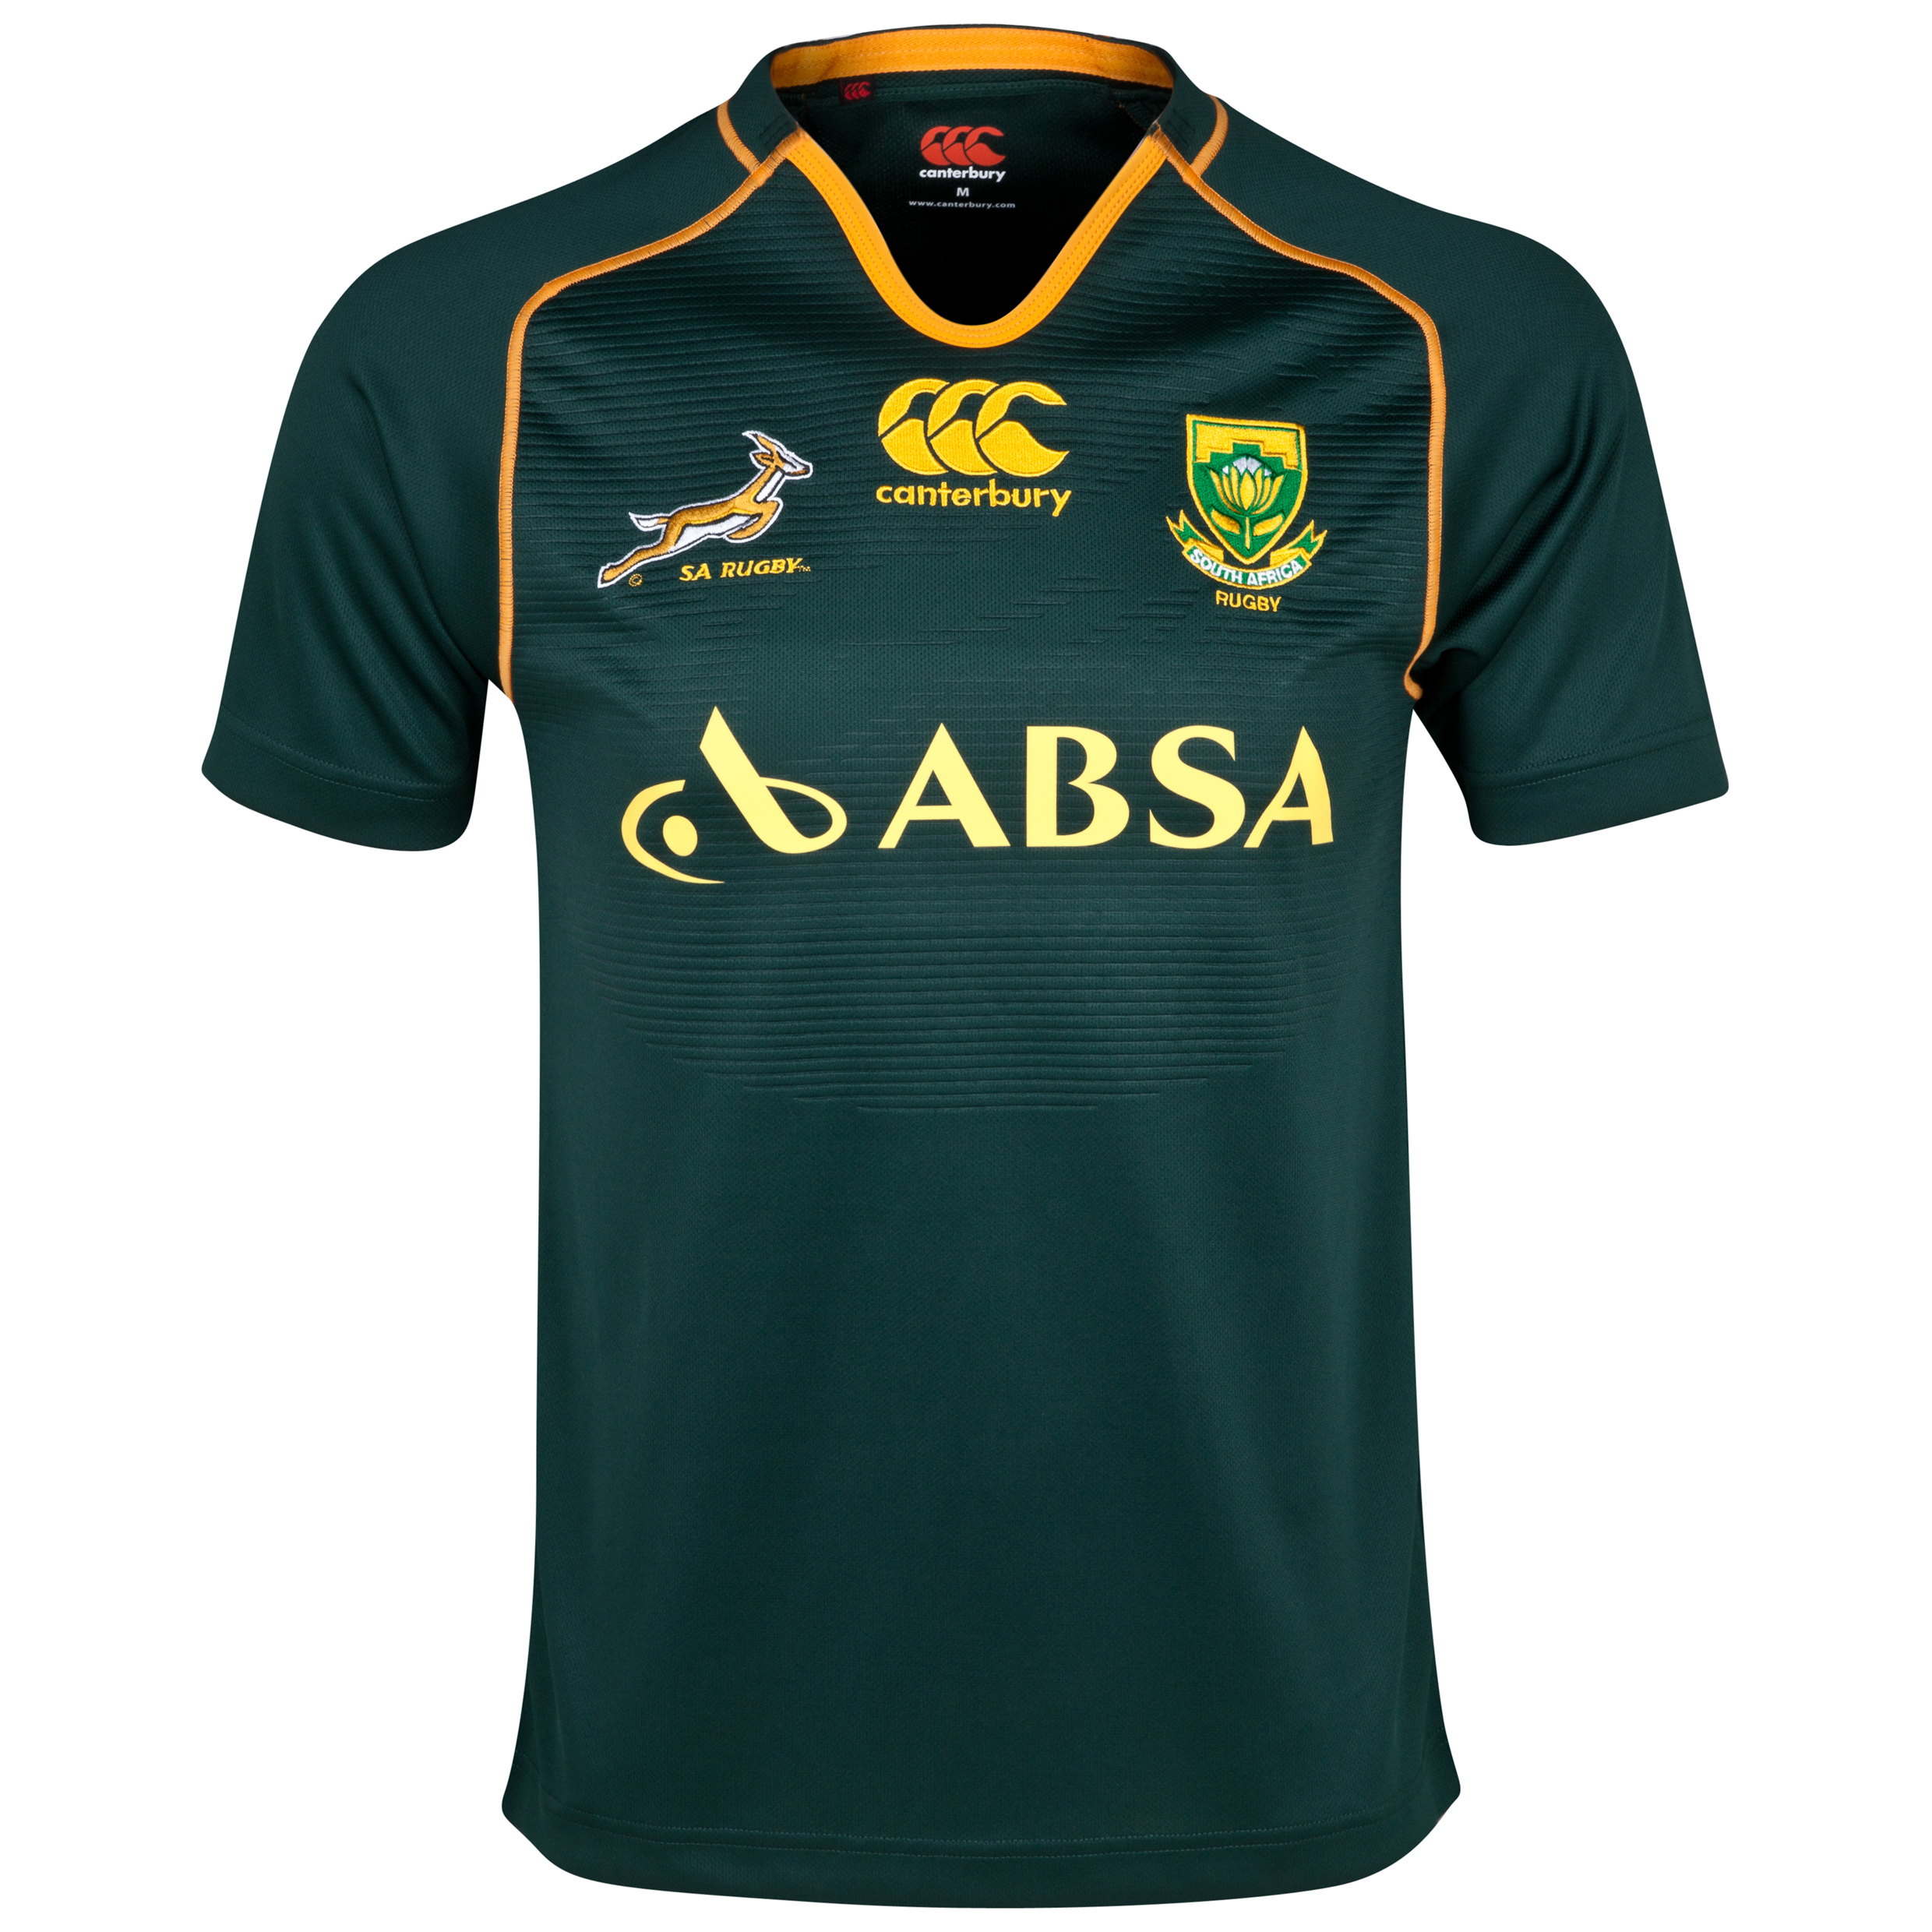 Springboks Home Rugby Pro Shirt 2013/14